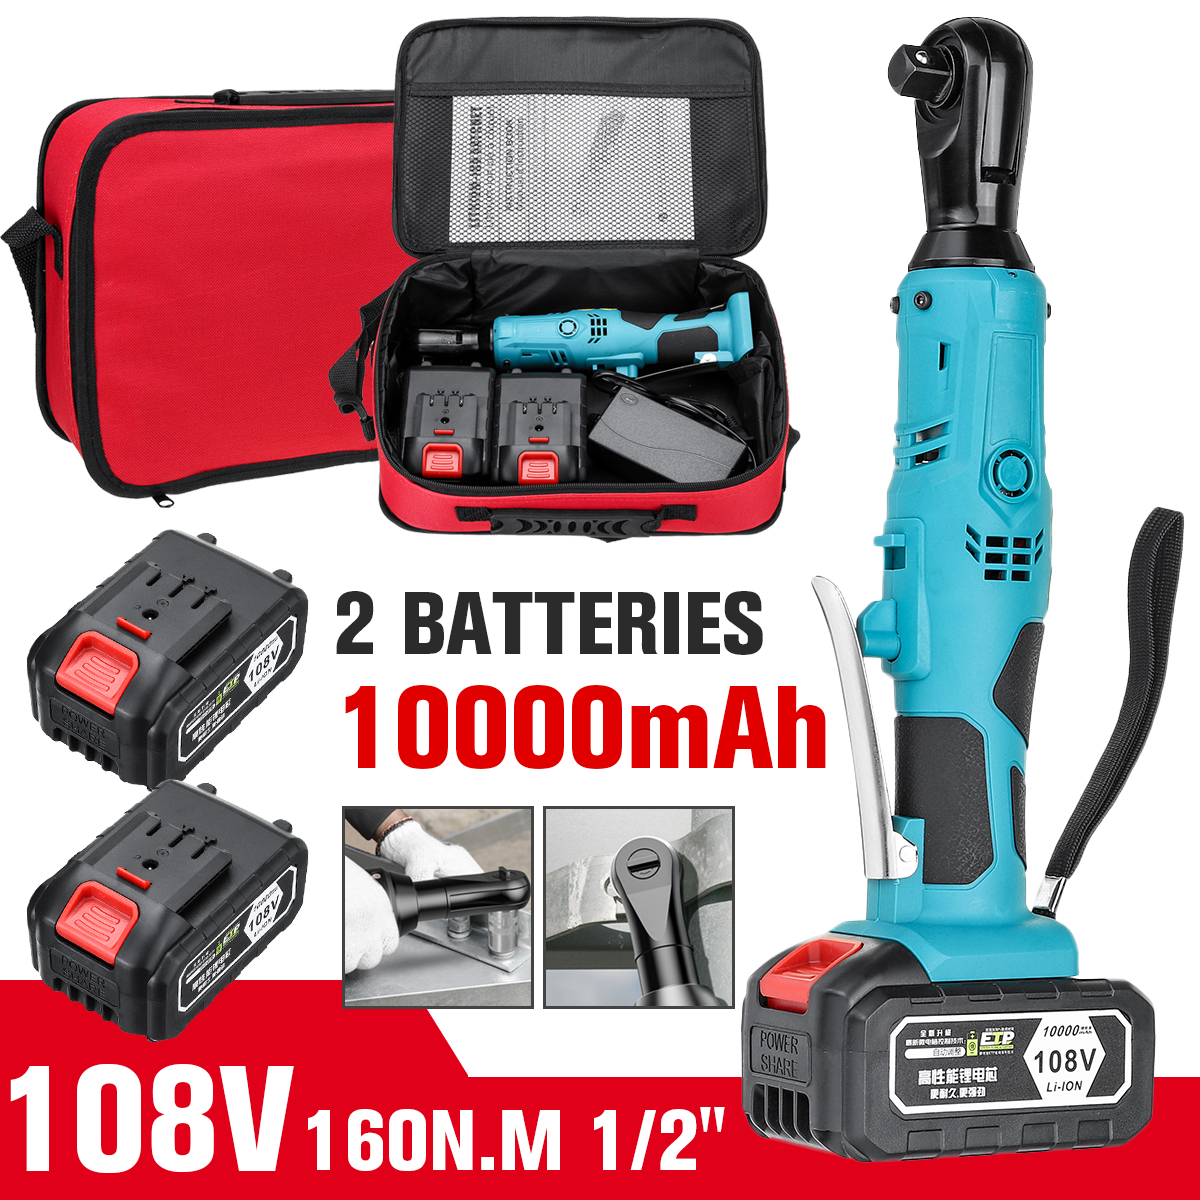 160N m Cordless Electric Wrench 108V Ratchet Wrench Repair Tool Rechargeable Right Angle Wrench with2 Battery Charger Kit